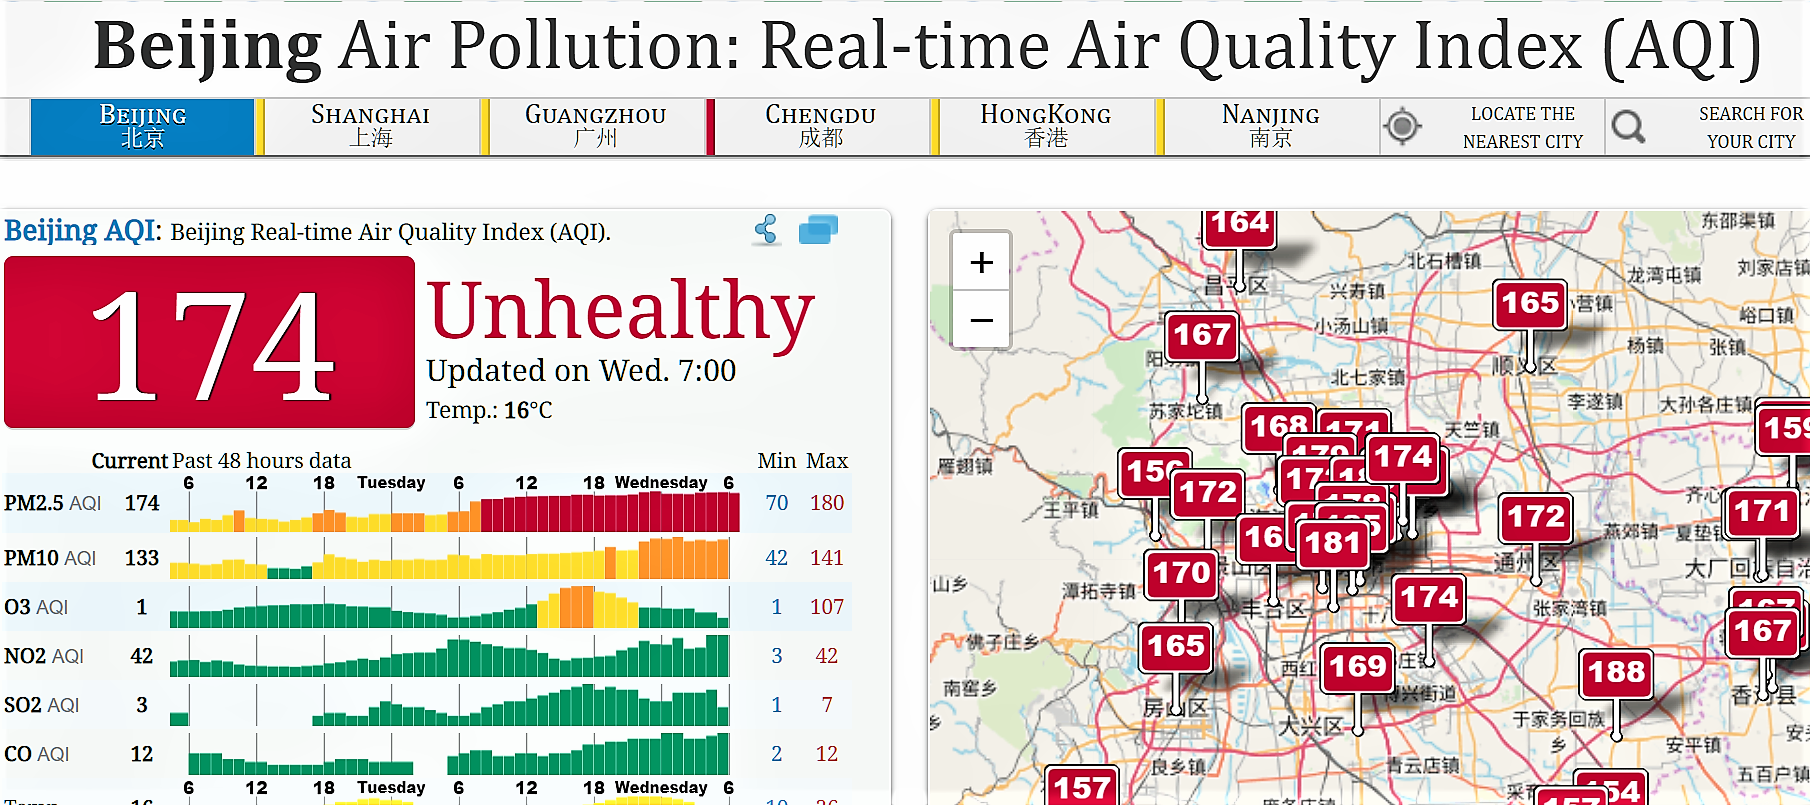 Peak hour Air pollution, Real time, Pollution